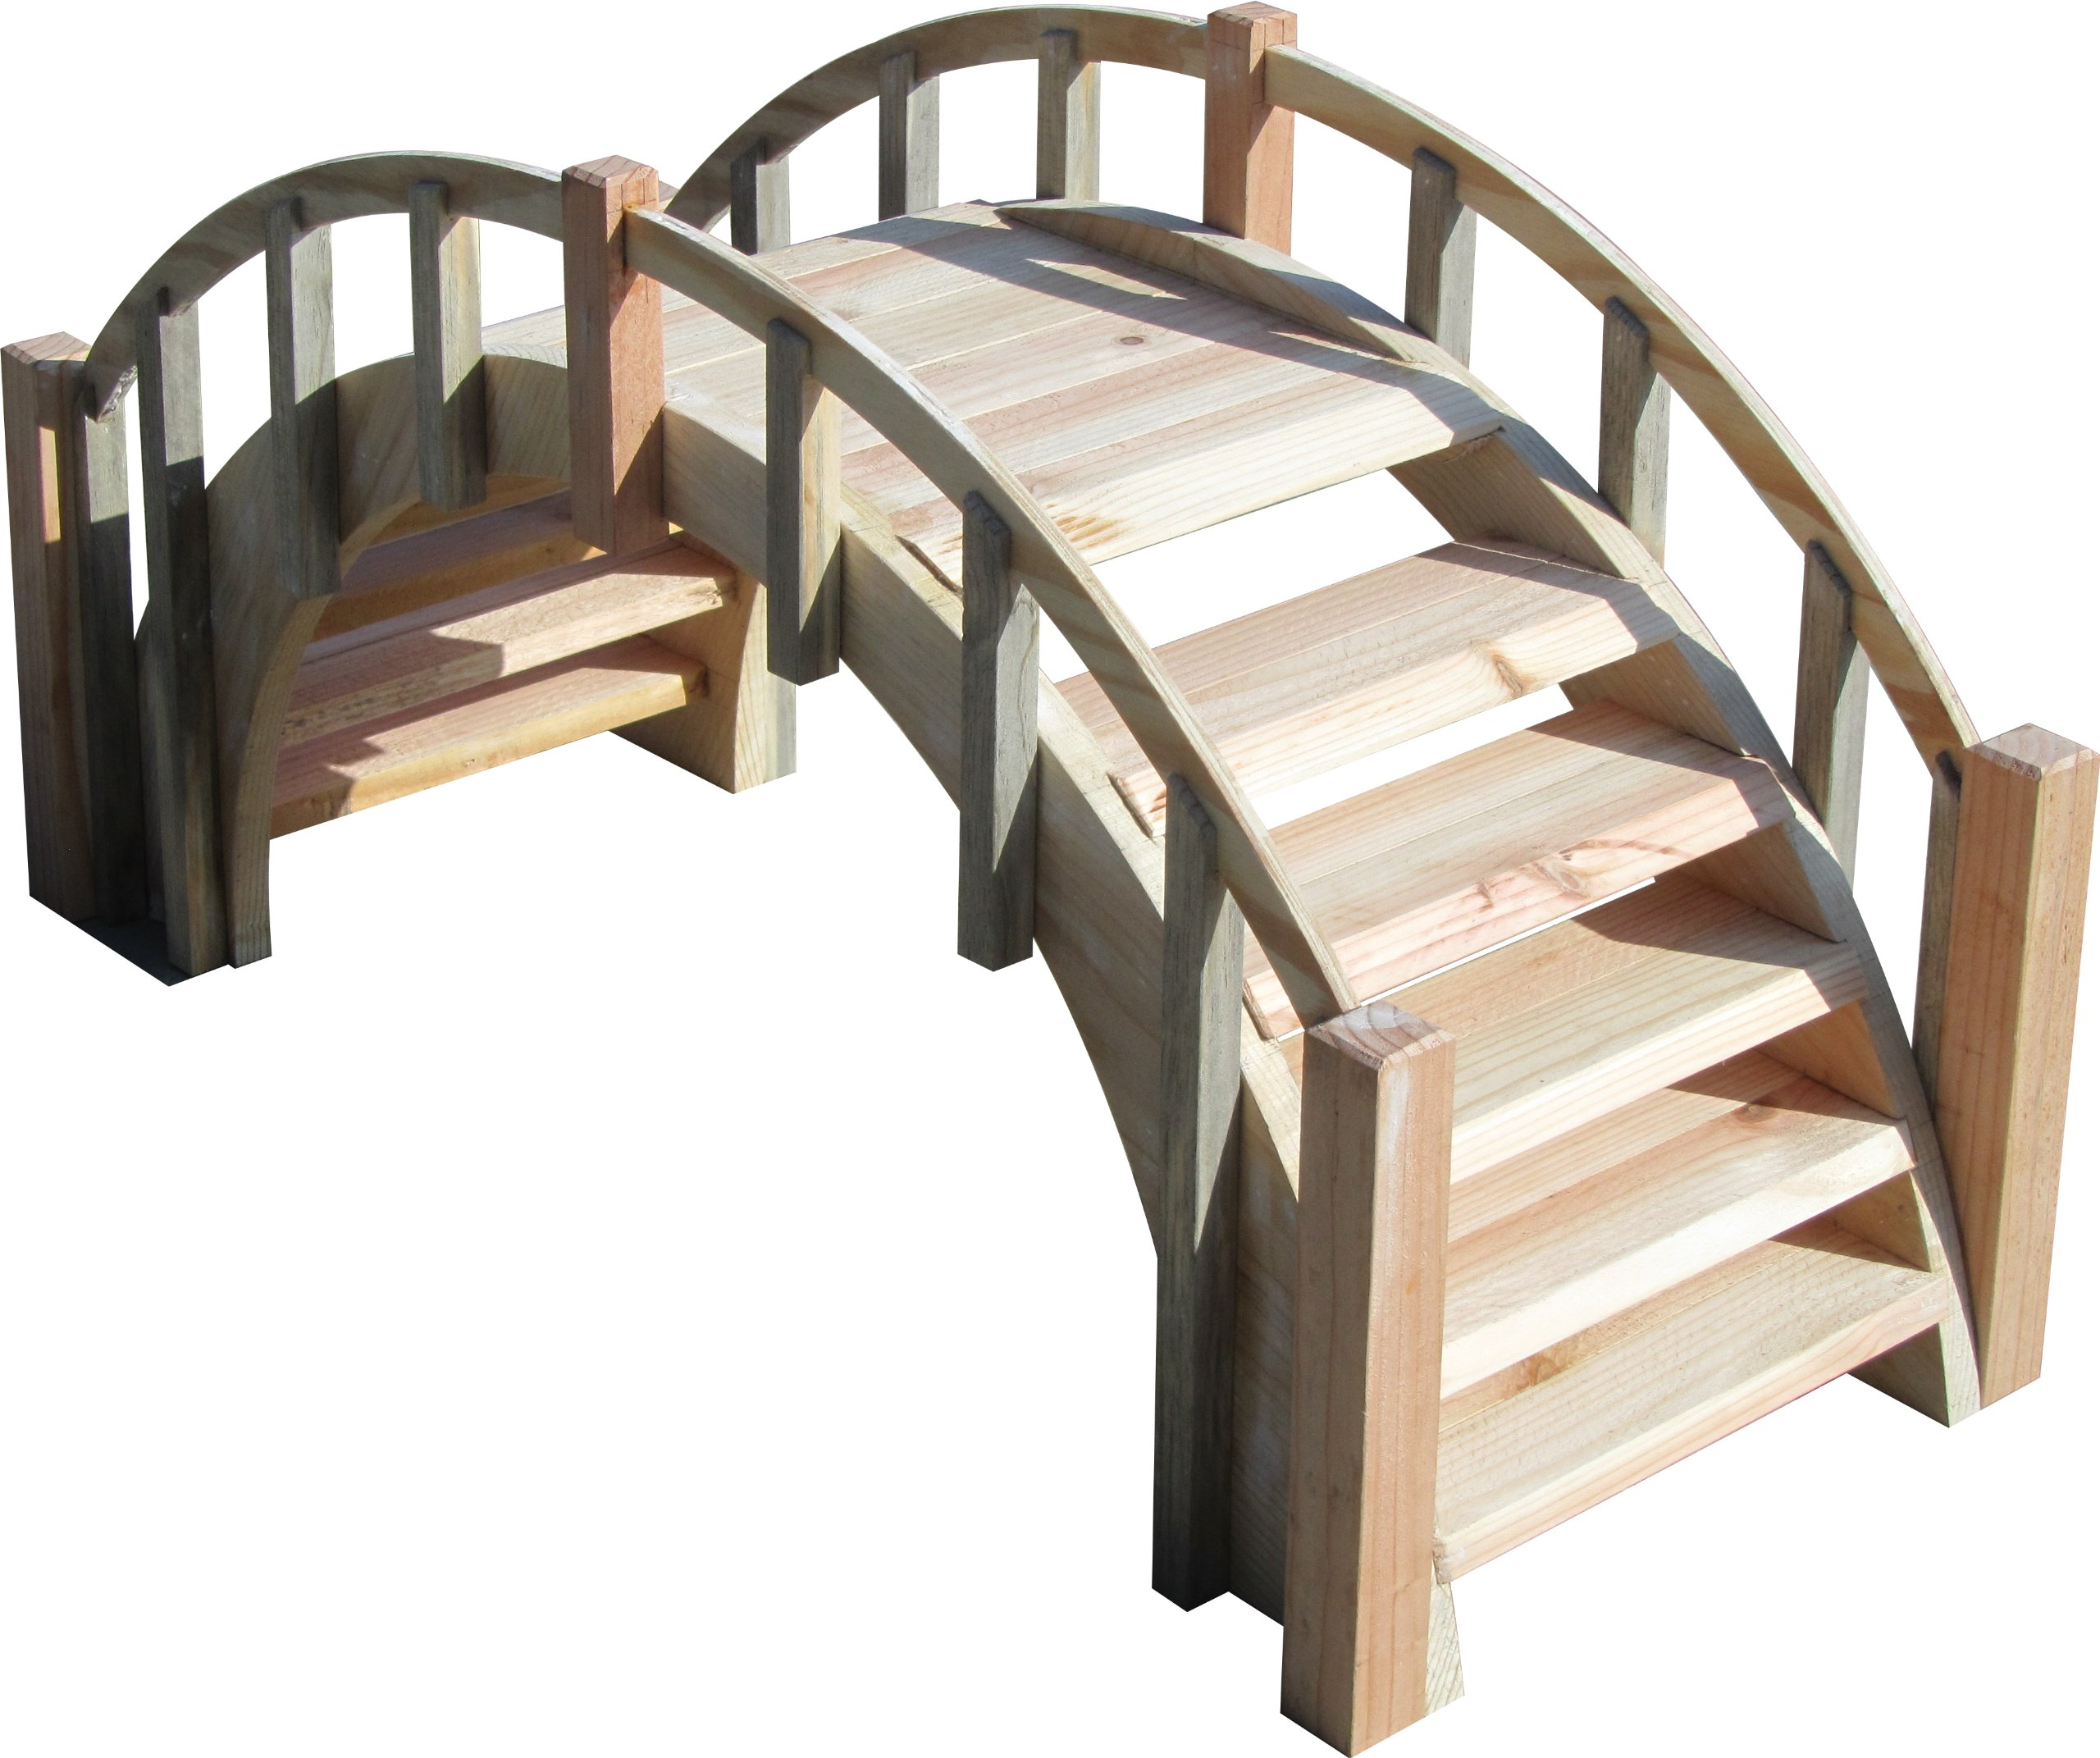 SamsGazebos Fairy Tale Wood Garden Bridge with Decorative Picket Railings and Steps, 33'' L, Unfinished